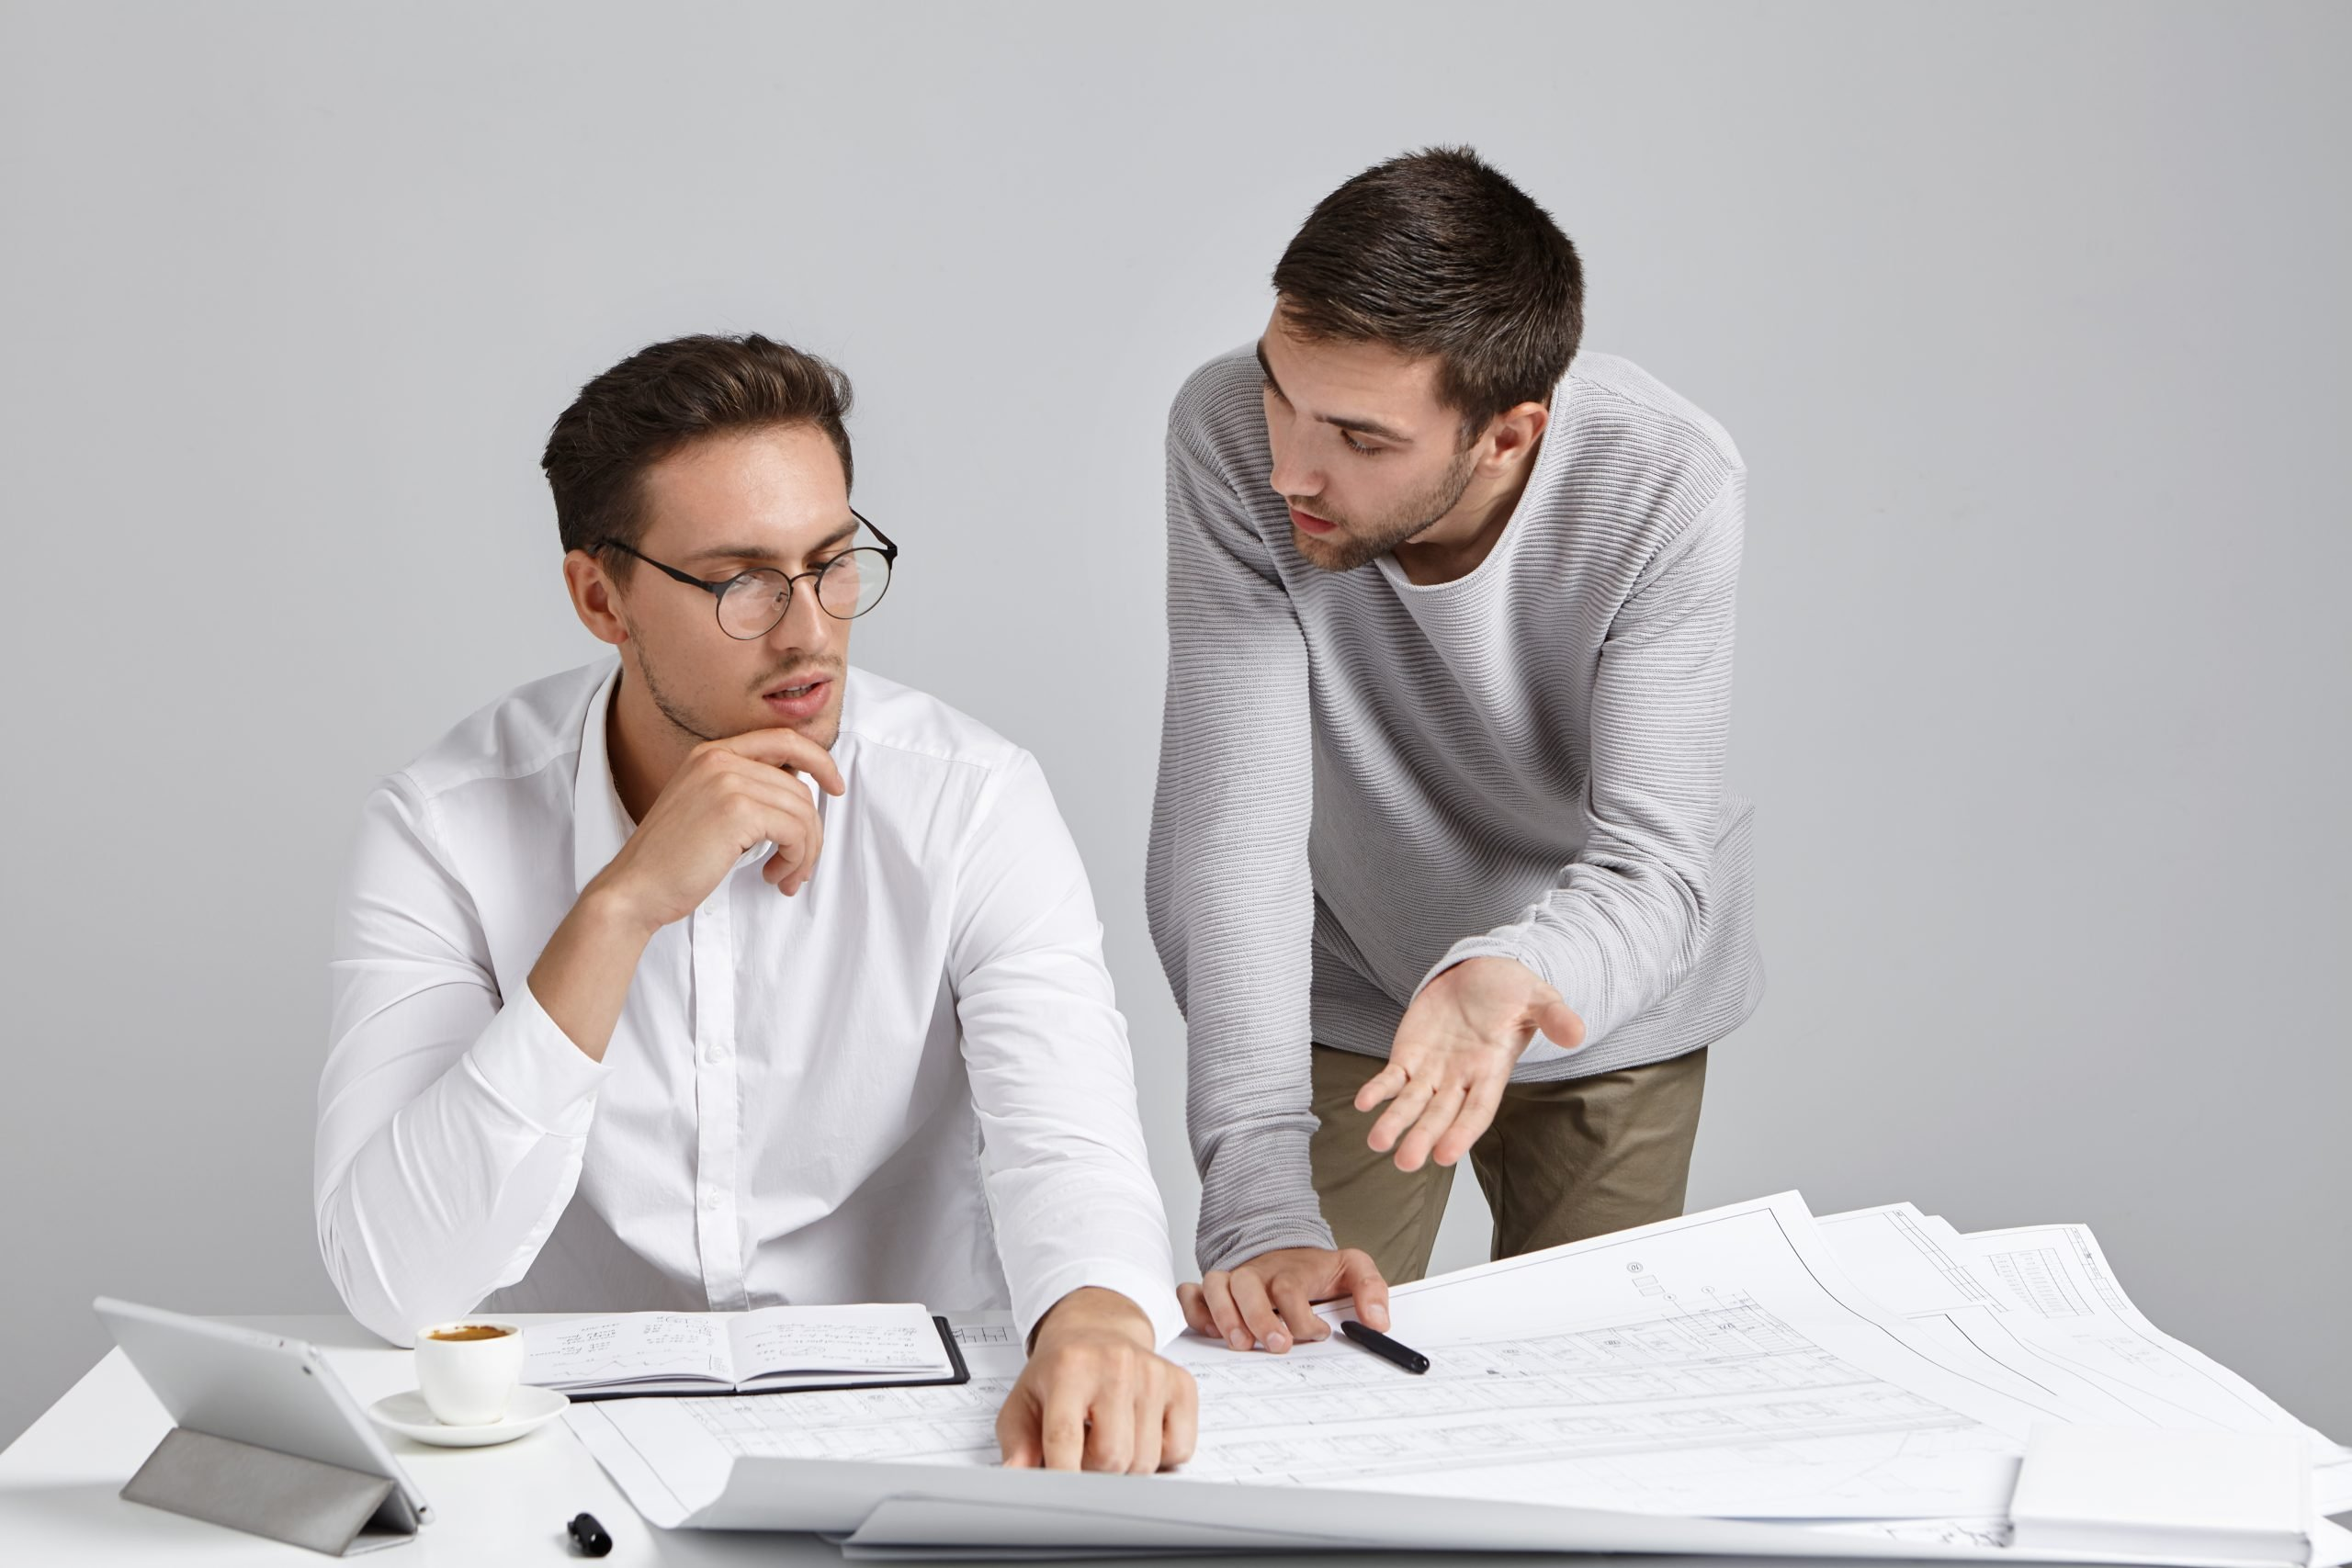 male coworkers doing paperwork